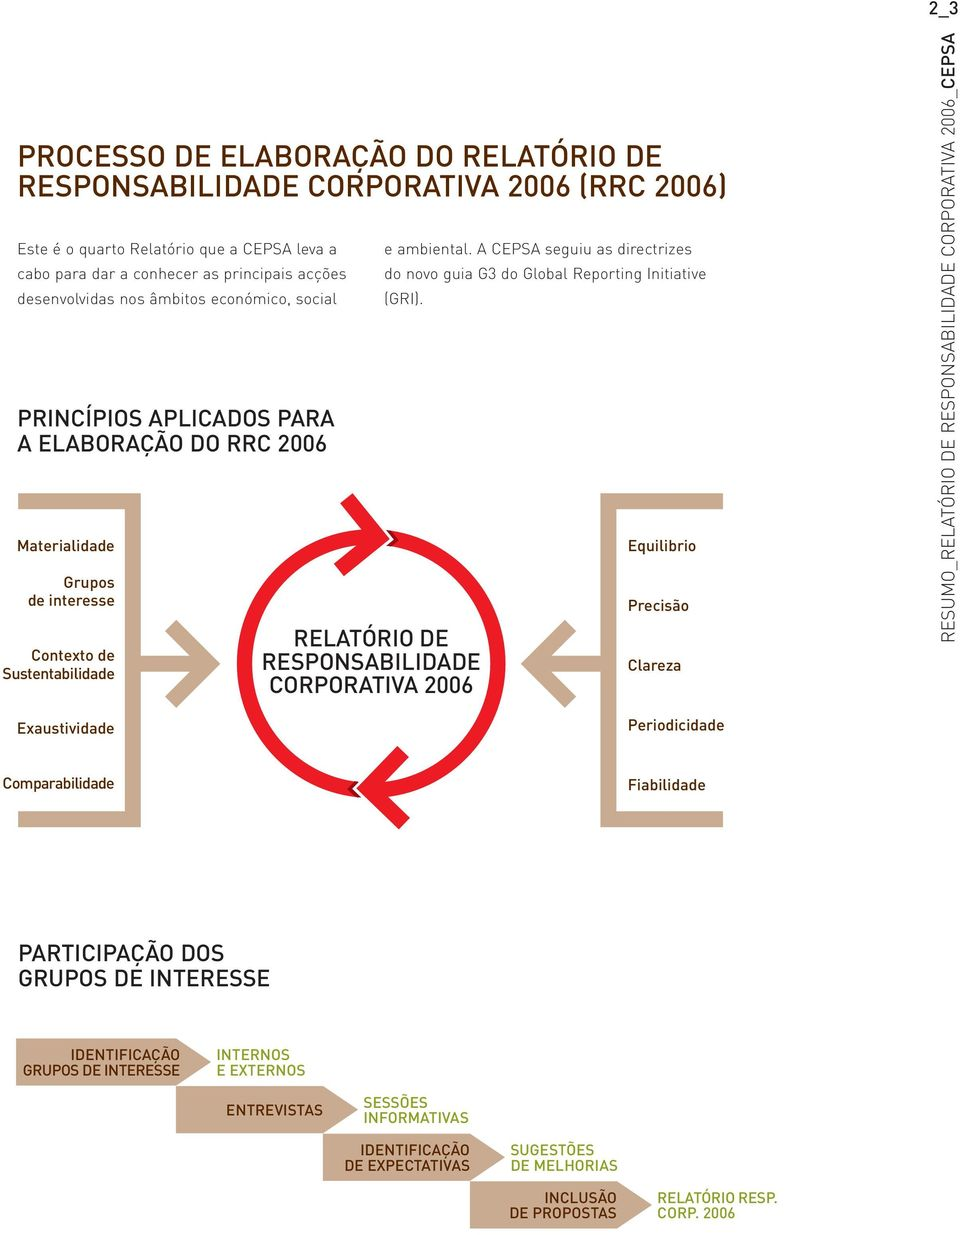 A CEPSA seguiu as directrizes do novo guia G3 do Global Reporting Initiative (GRI).